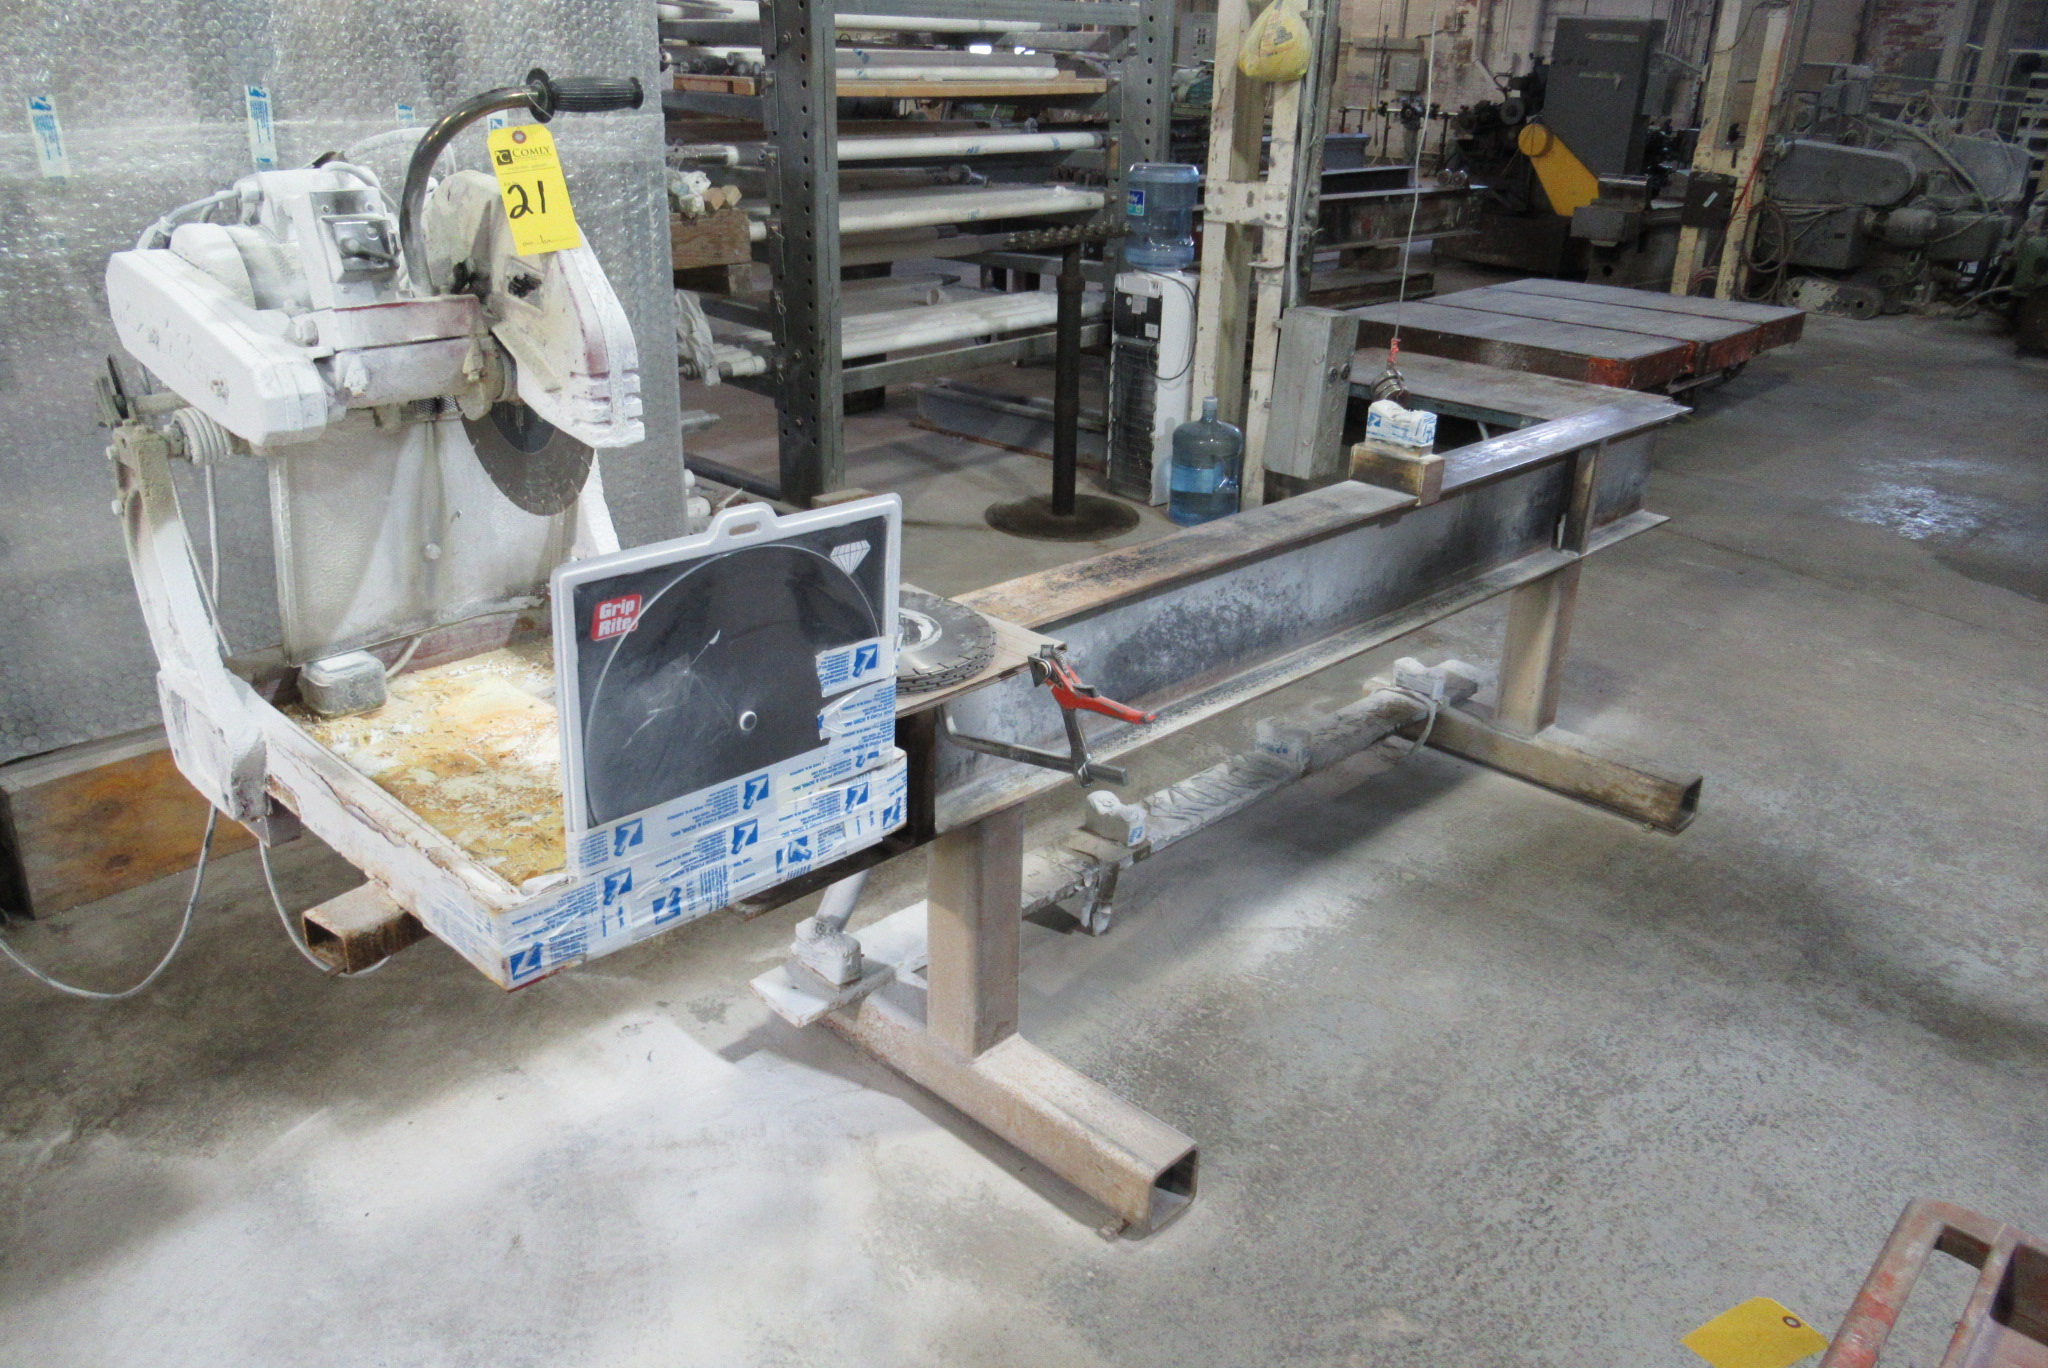 Lot 21 - MK Brick Saw Abrasive Cut-Off Saw